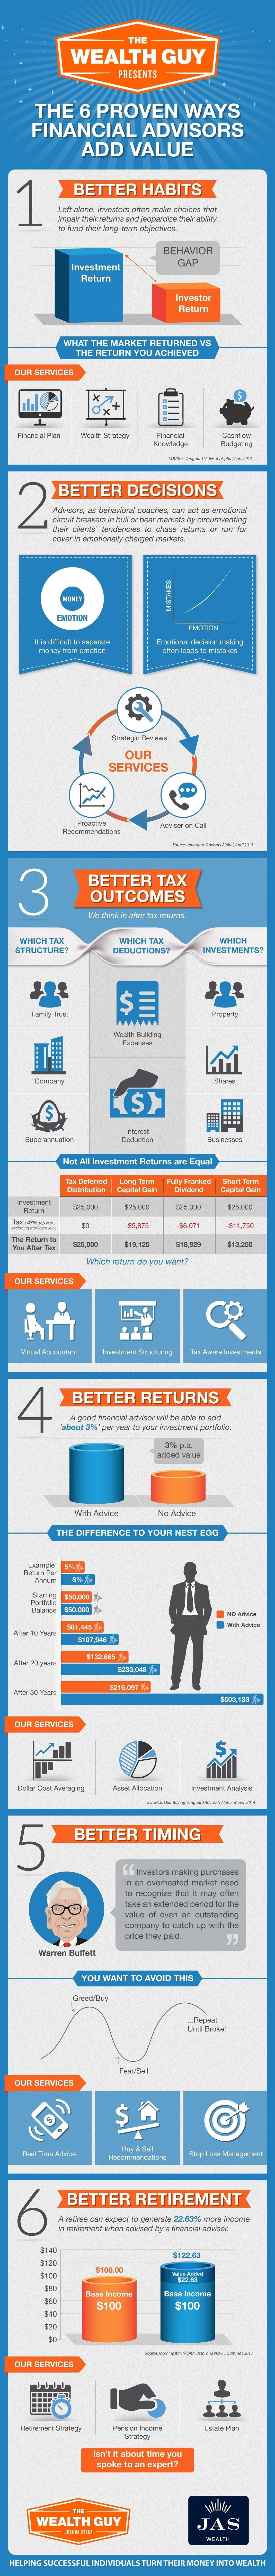 The six established financial consultants add value #infographic